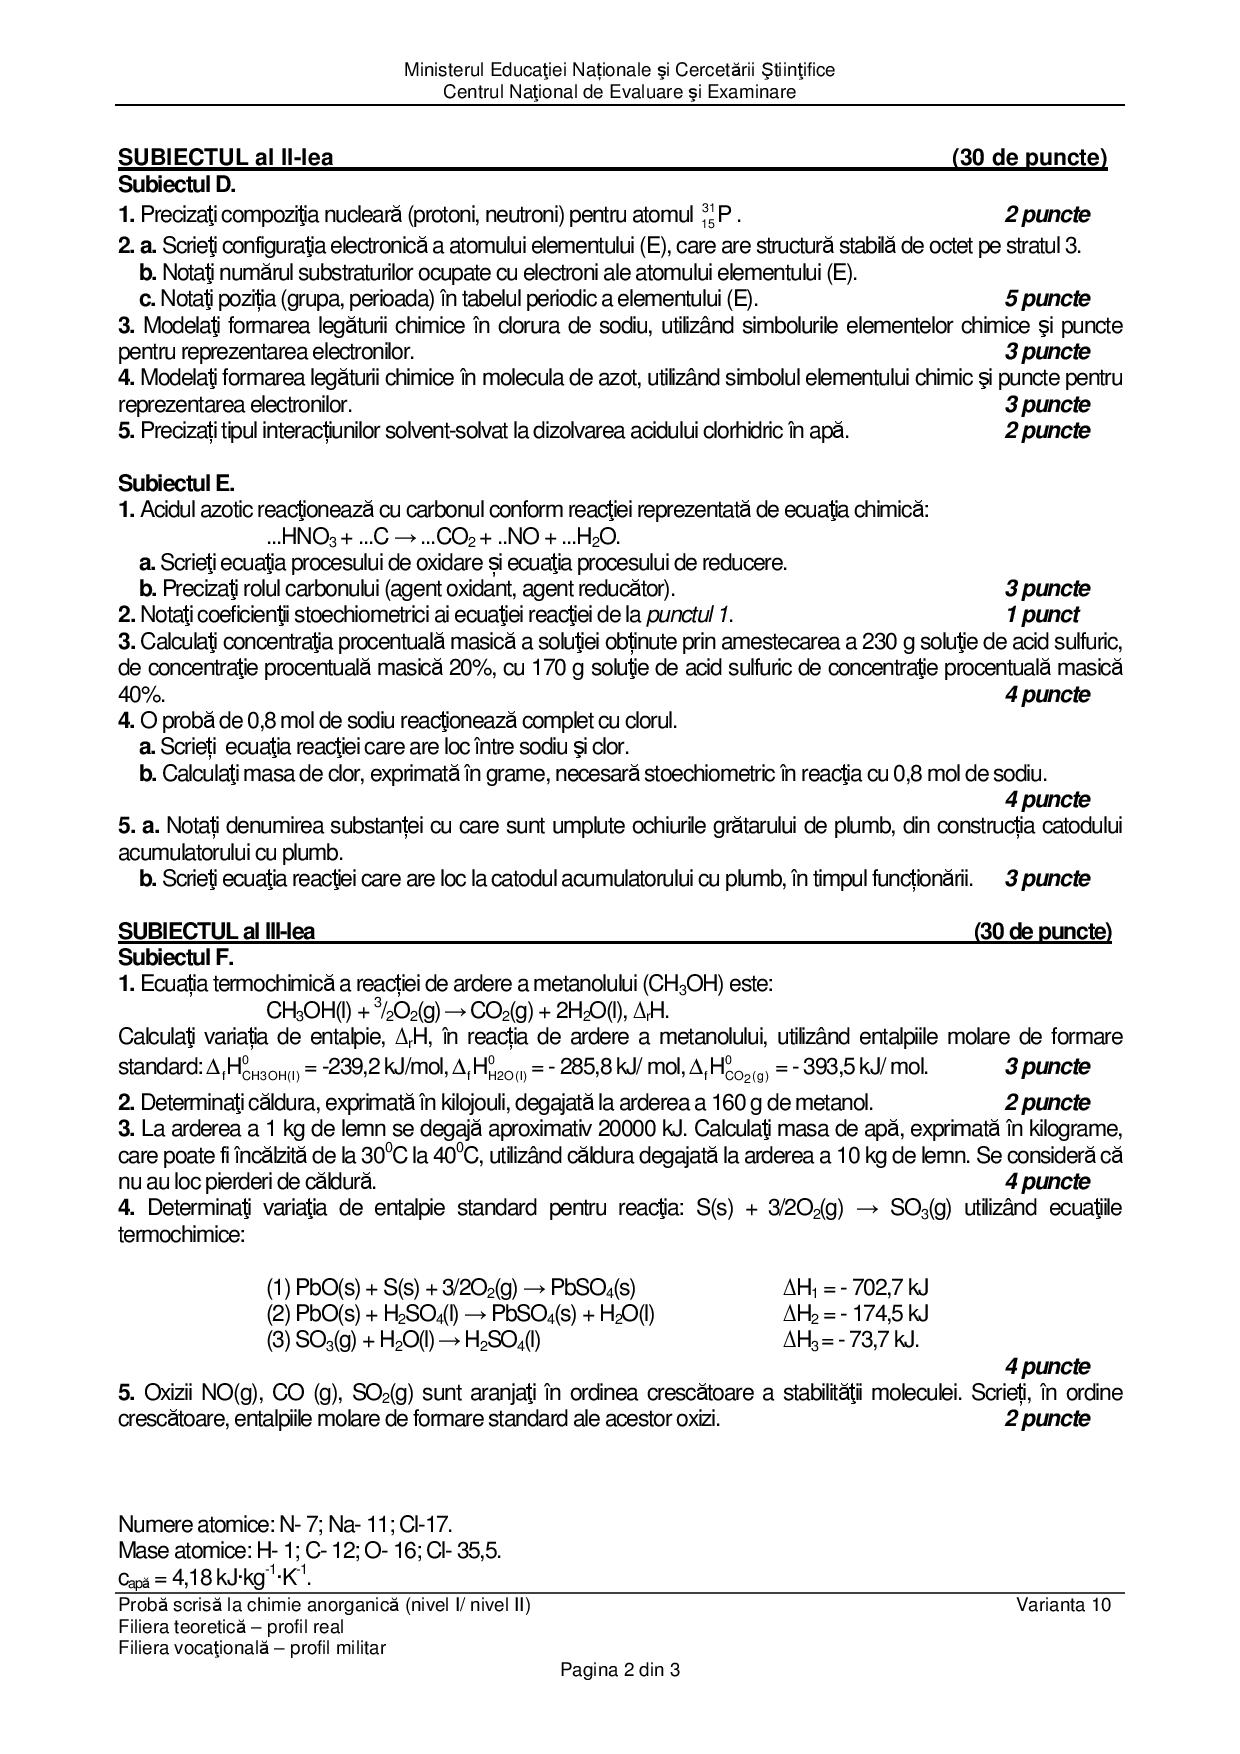 BAC 2016. Subiecte Chimie profil real